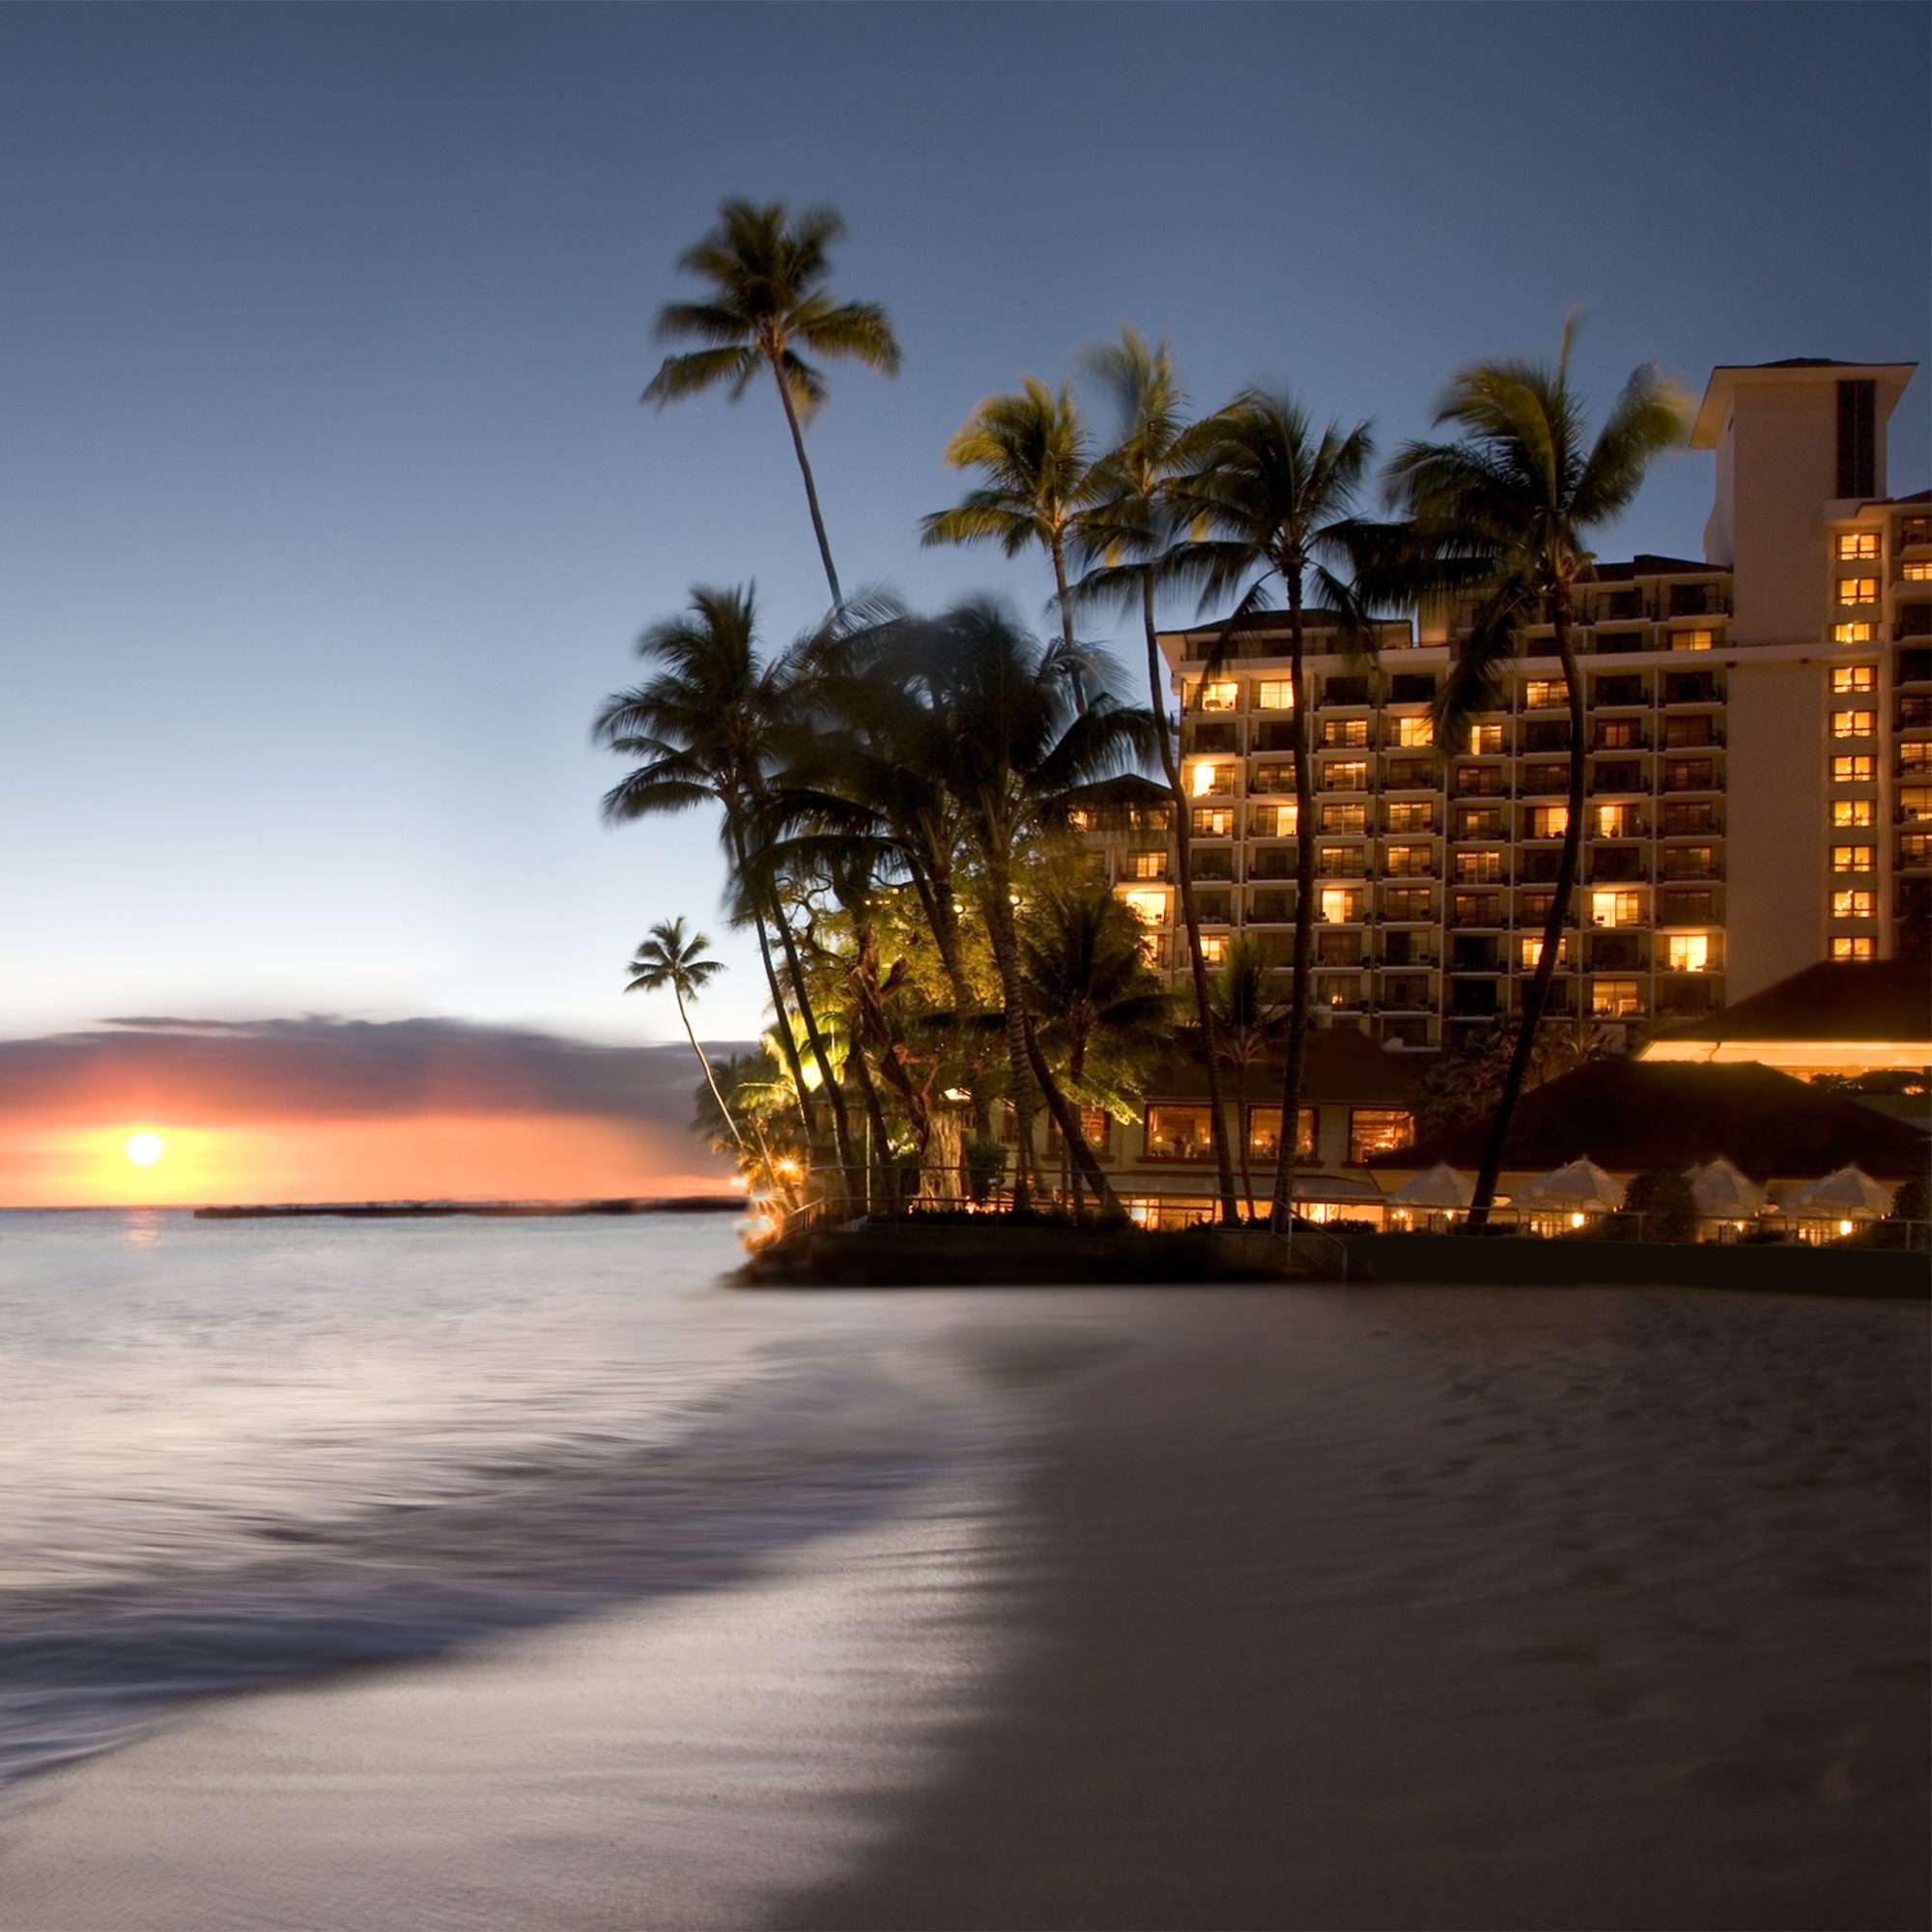 Michael Kors's Guide to Hawaii: Halekulani Hotel